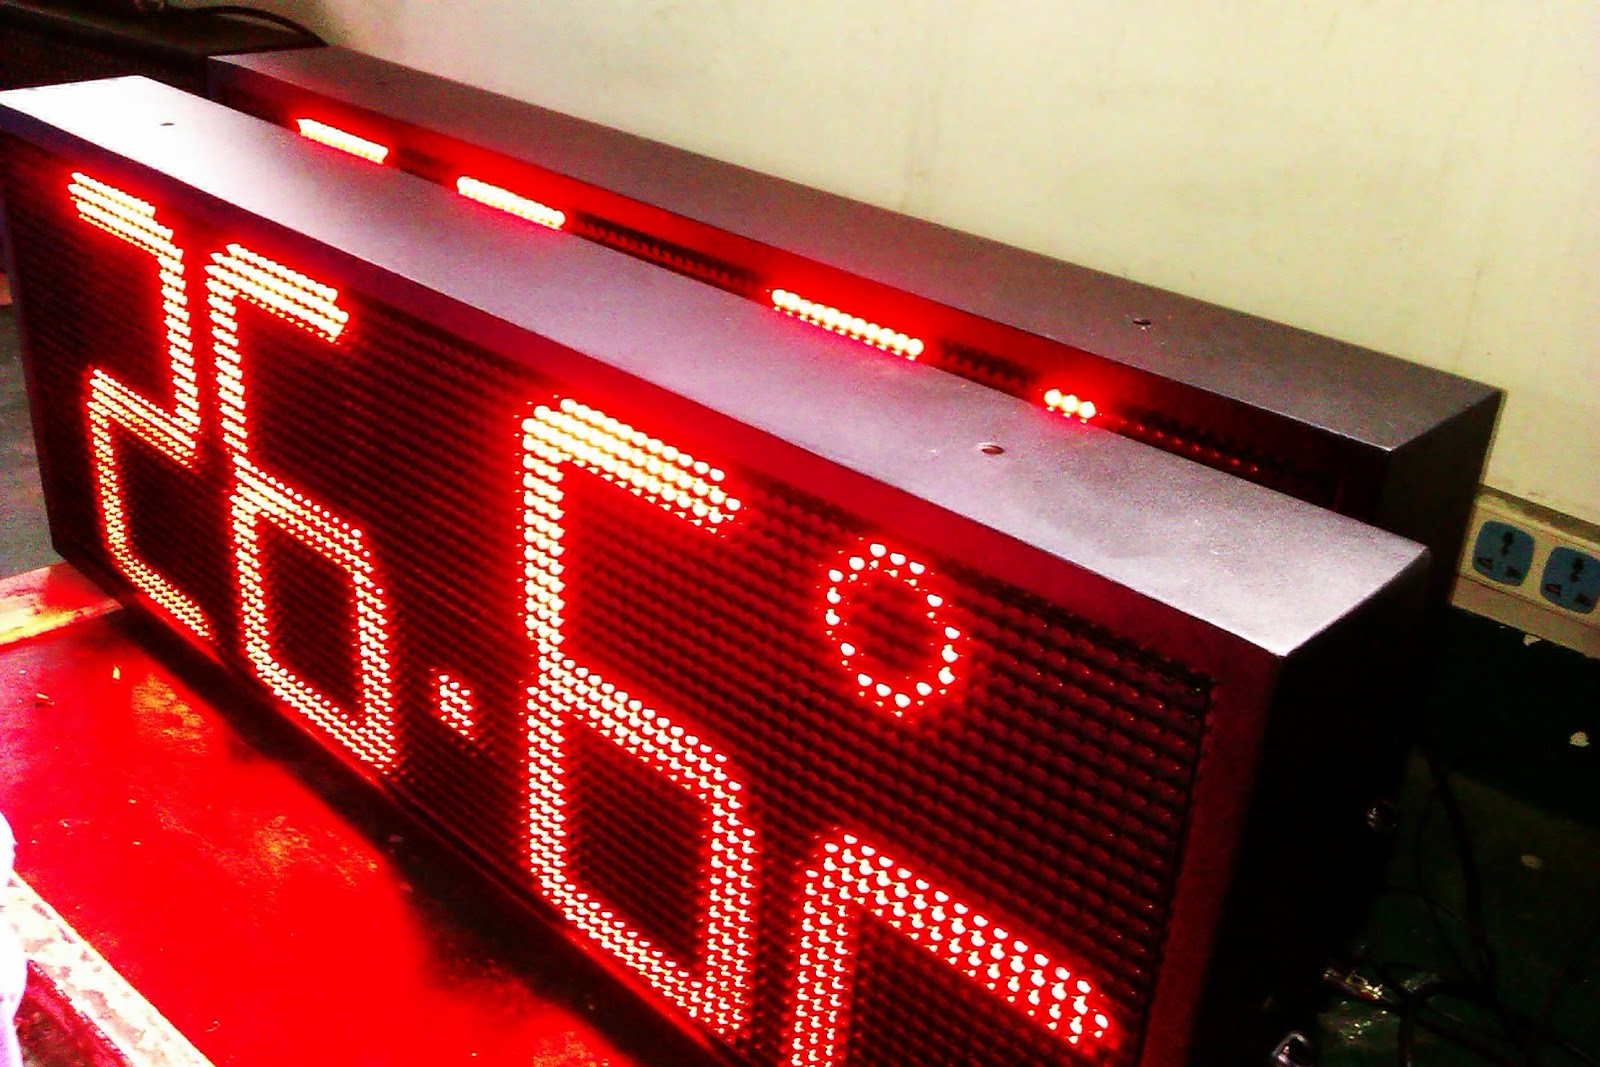 Petroled big outdoor clock red led time temperature display outdoor led clock wall mounted waterproof clock amipublicfo Image collections